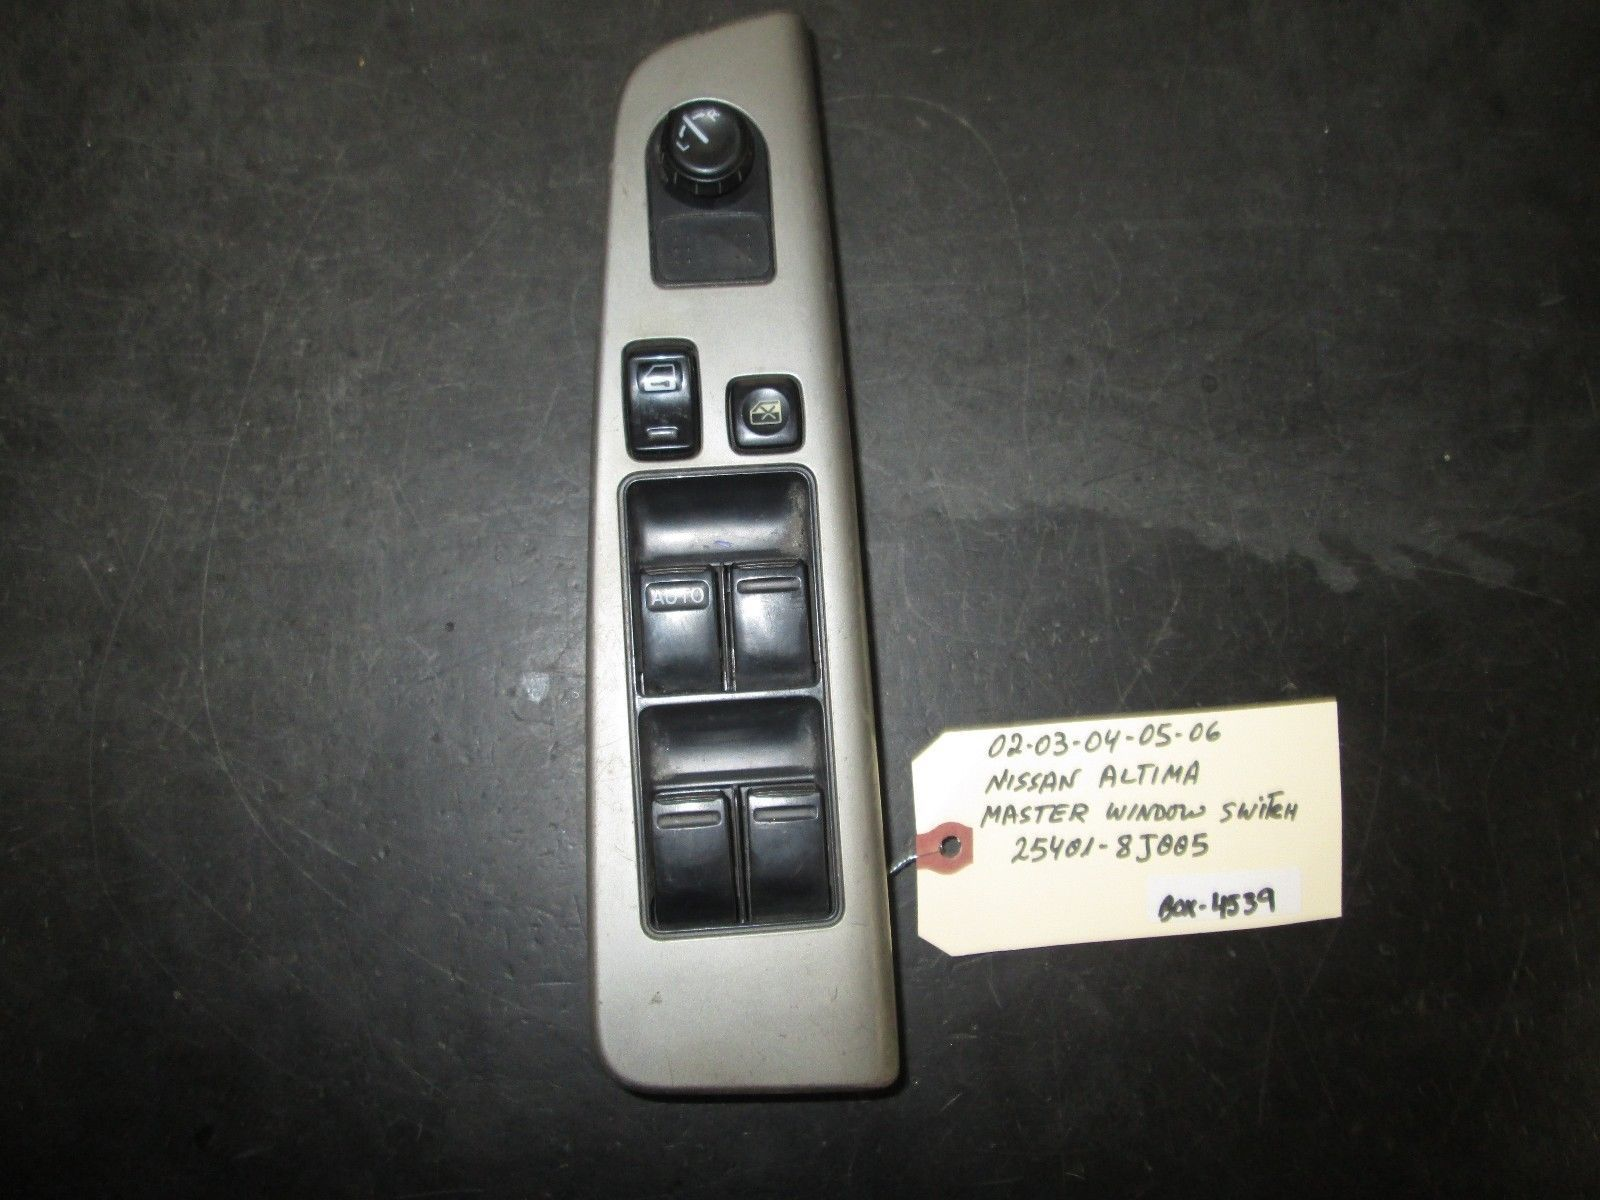 Primary image for 02 03 04 05 06 NISSAN ALTIMA MASTER WINDOW SWITCH #25401-8J005